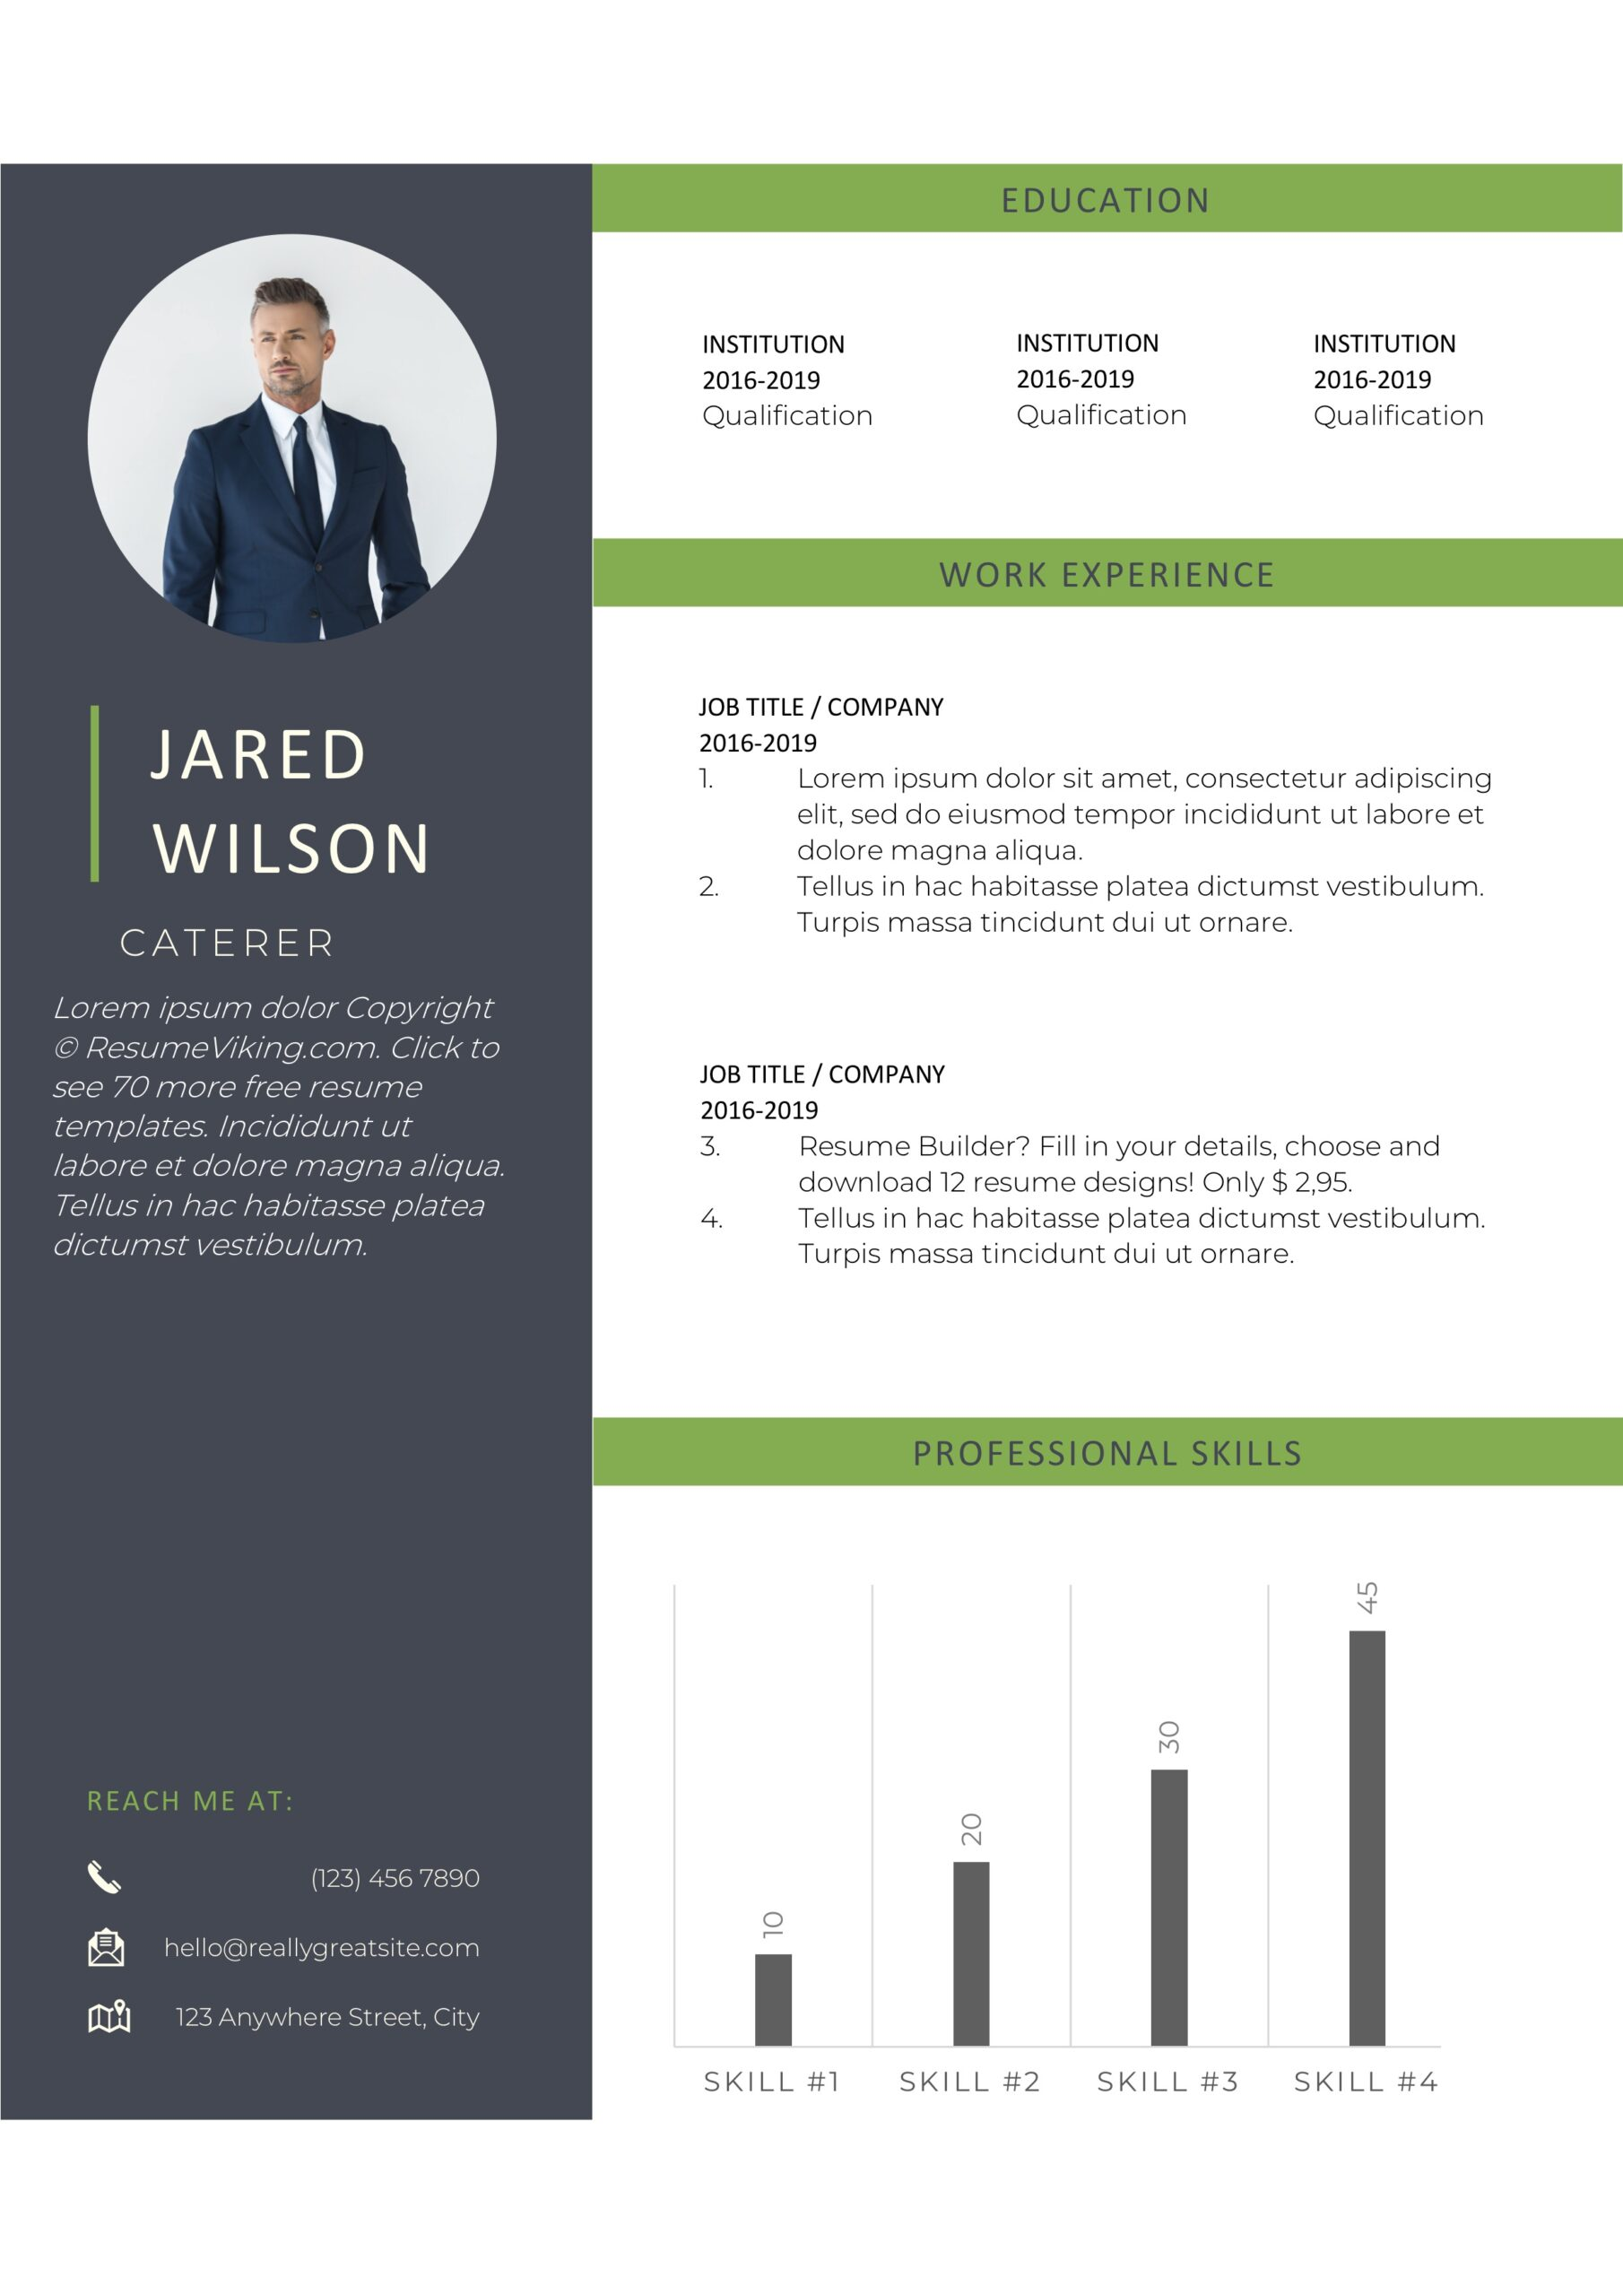 resume templates pdf word free downloads and guides downloadable grace resumeviking hotel Resume Downloadable Resume Templates 2020